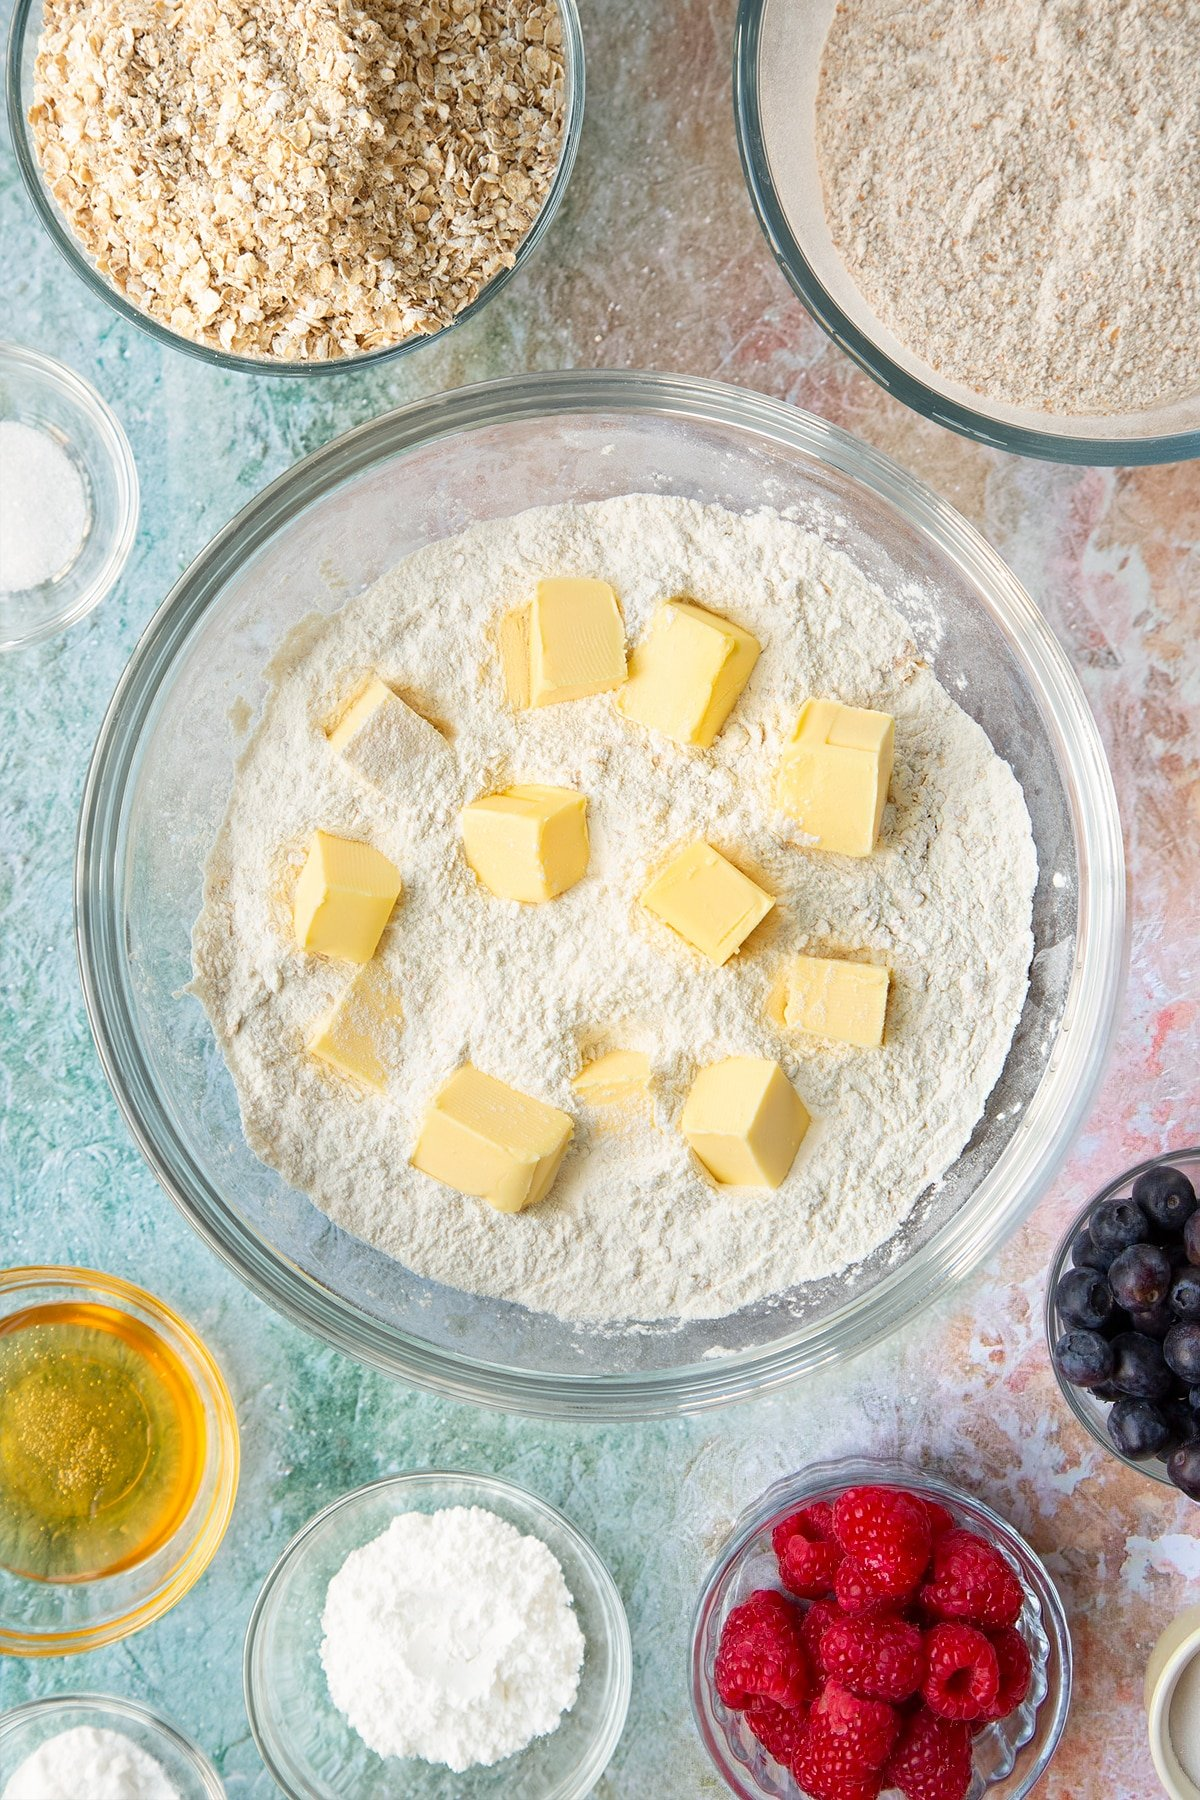 Self-raising flour, bicarbonate of soda, sugar and oats combined in a glass mixing bowl with cubed butter on top. Ingredients to make oatmeal scones surround the bowl.